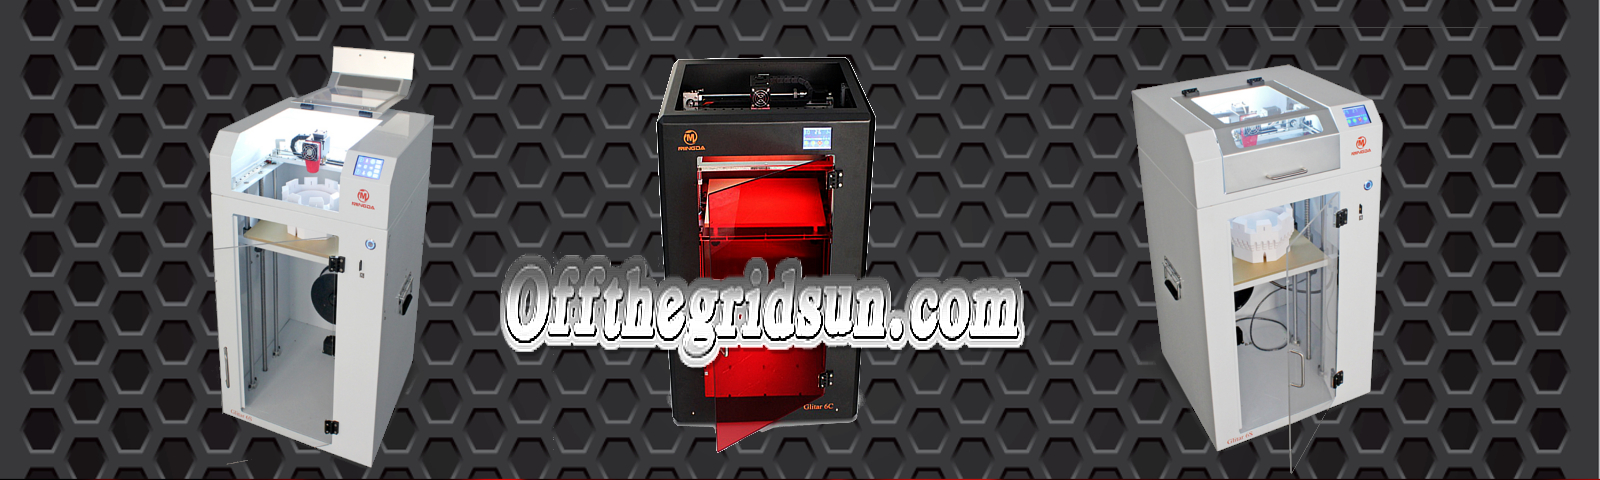 Large 3D Printer & Filament